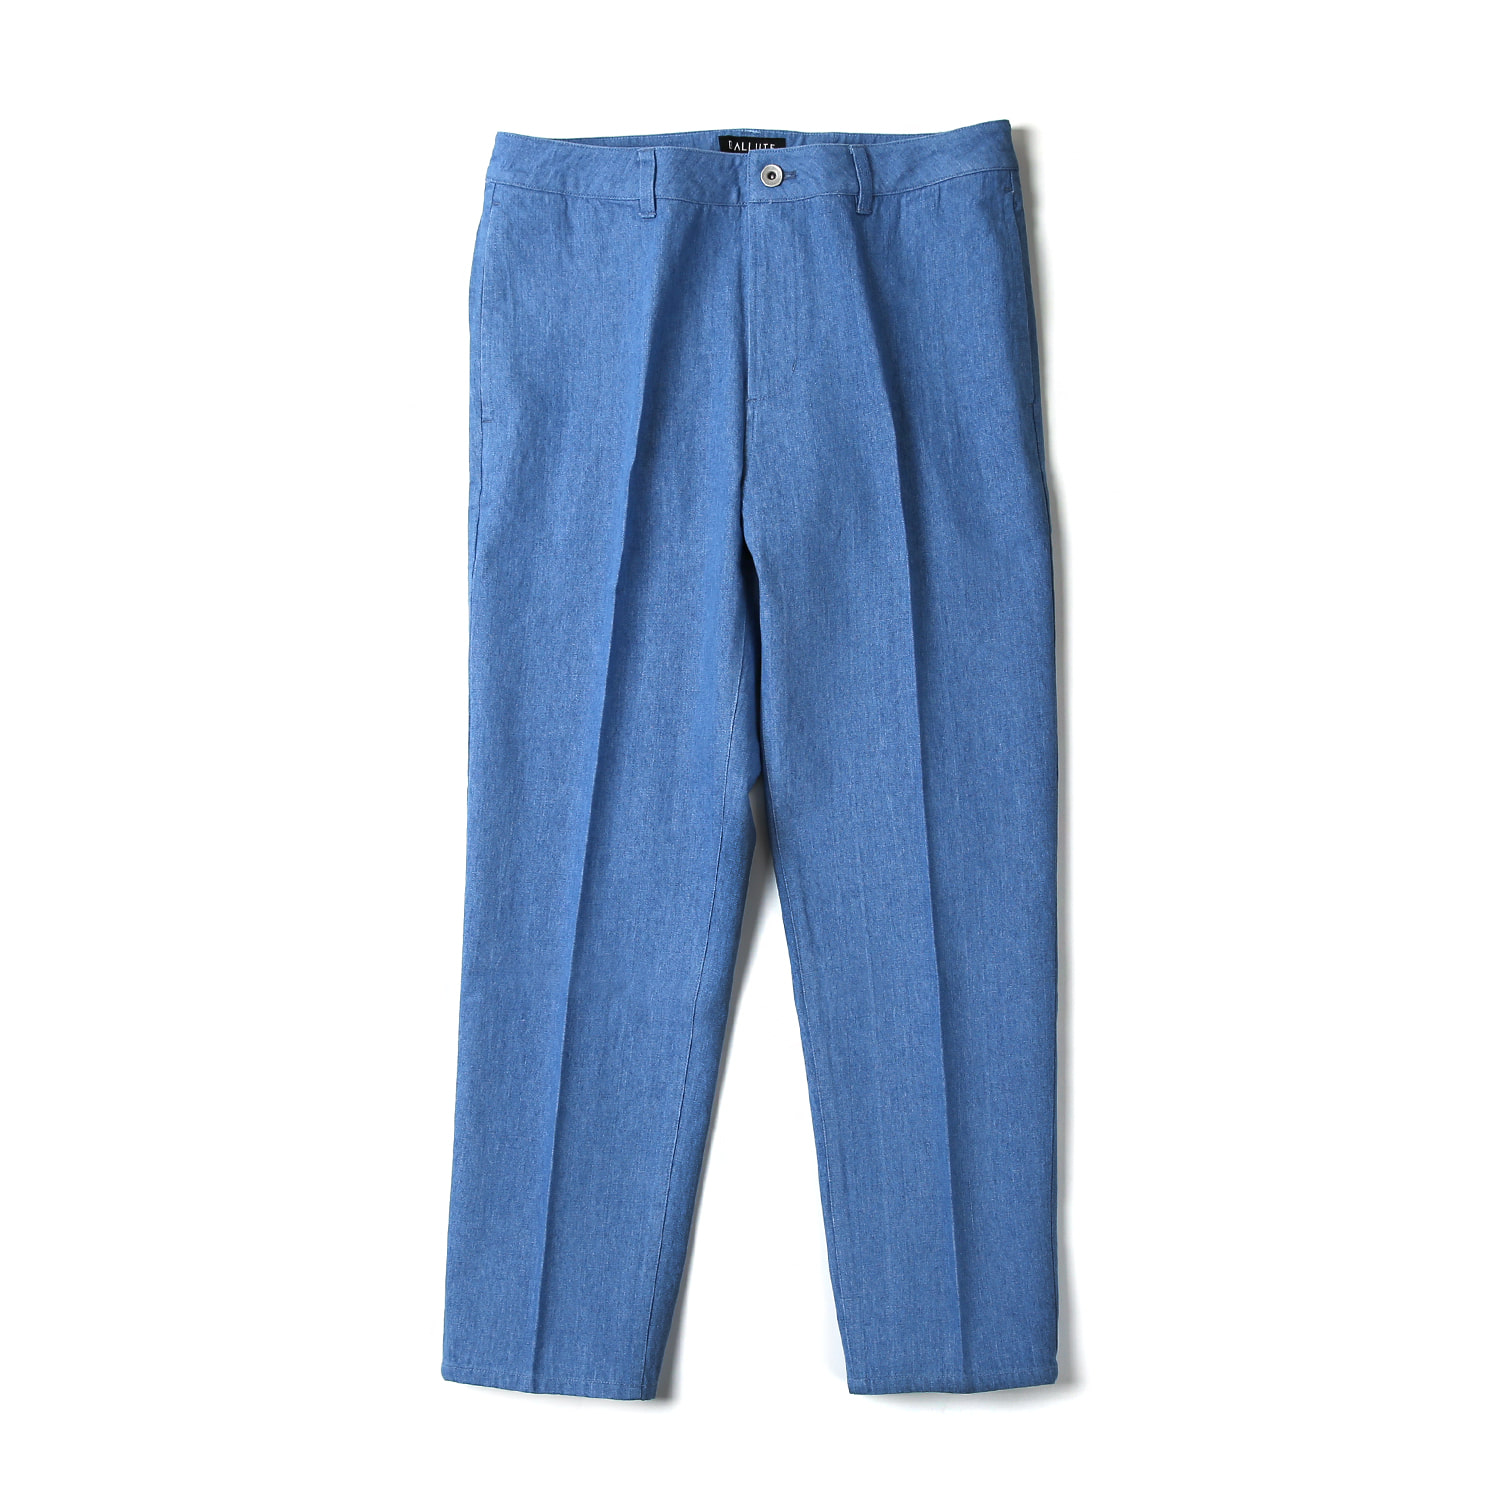 FRENCH WORK TROUSERS (WASHED)